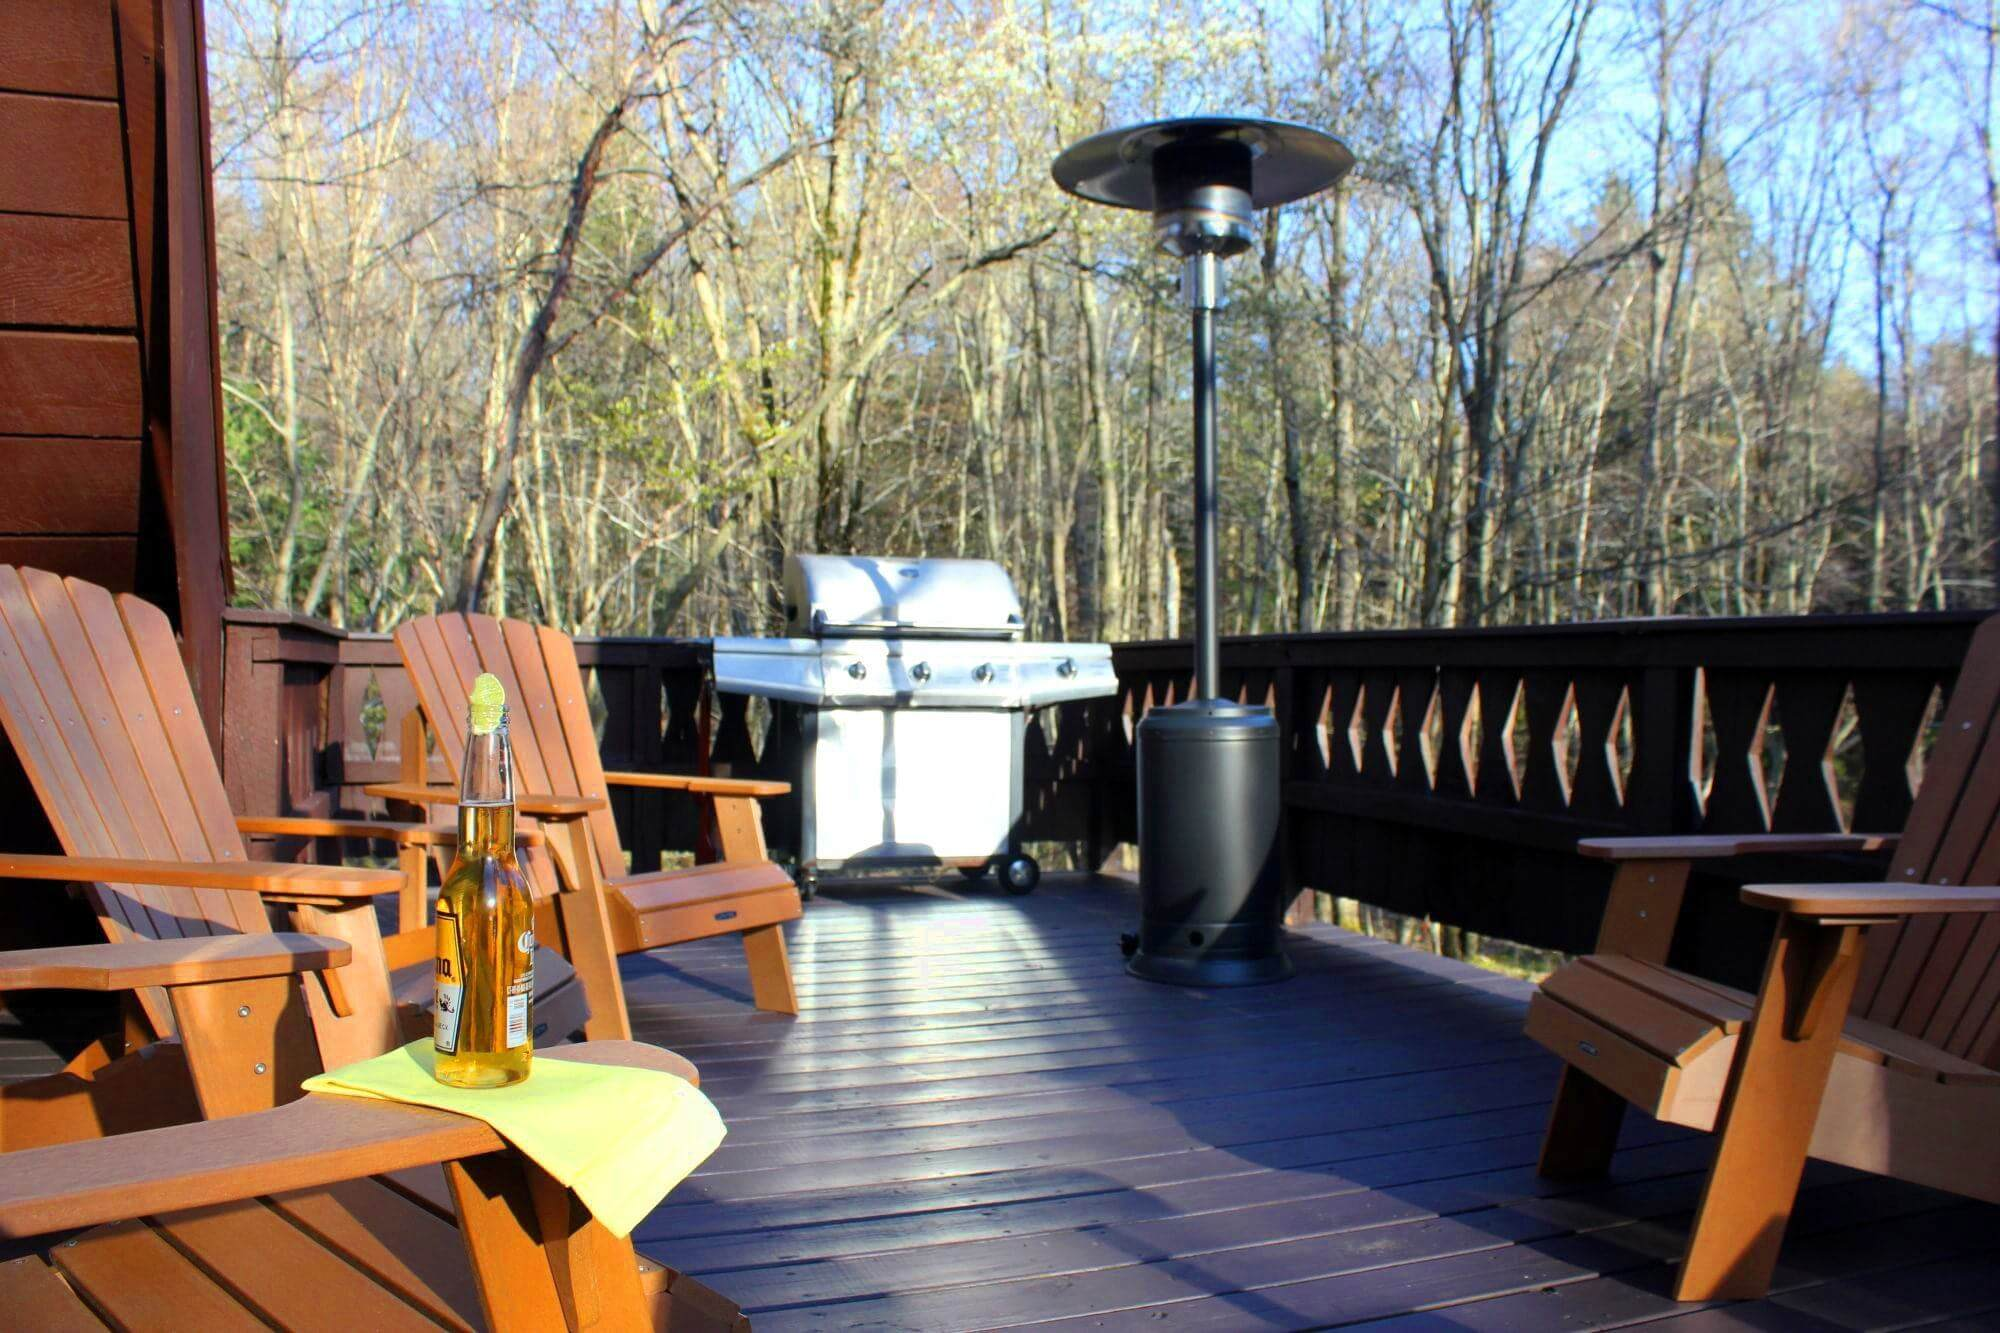 A Poconos Rental With A Great Deck, Hot Tub And Game Room - A Gigantic Second Floor Deck